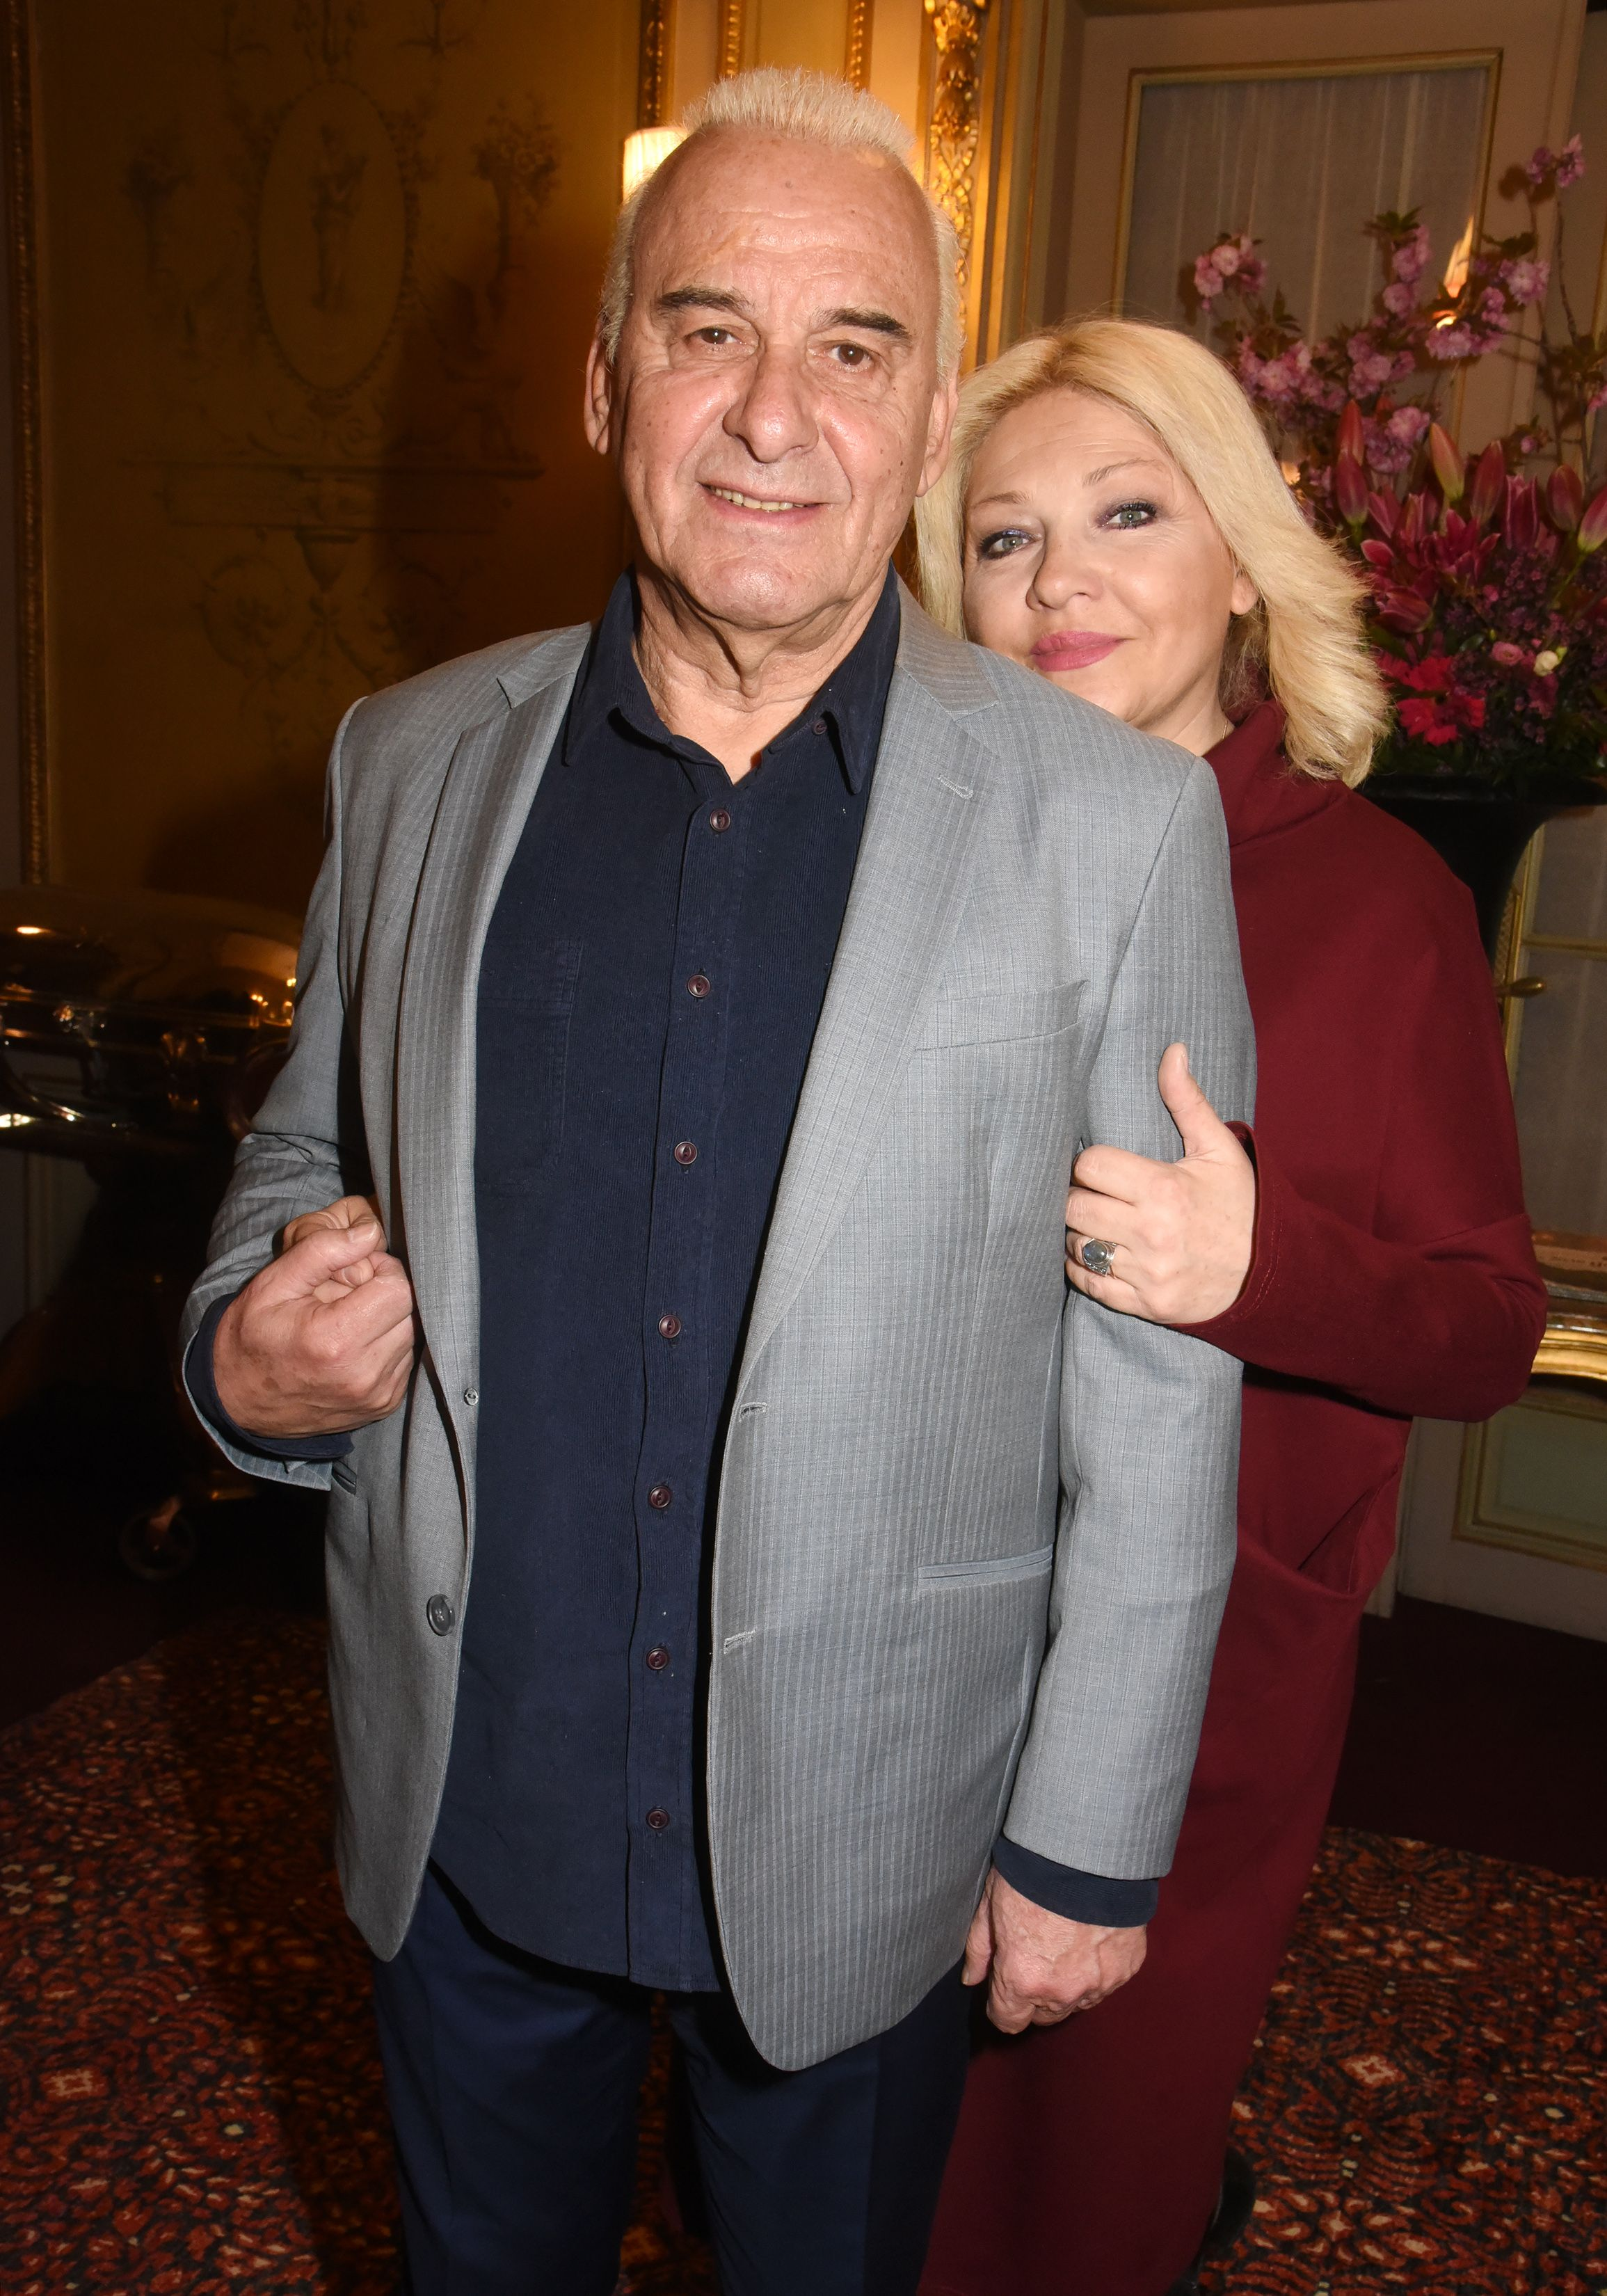 Michel et Sanda Fugain le 15 avril 2019 à Paris. l Source : Getty Images